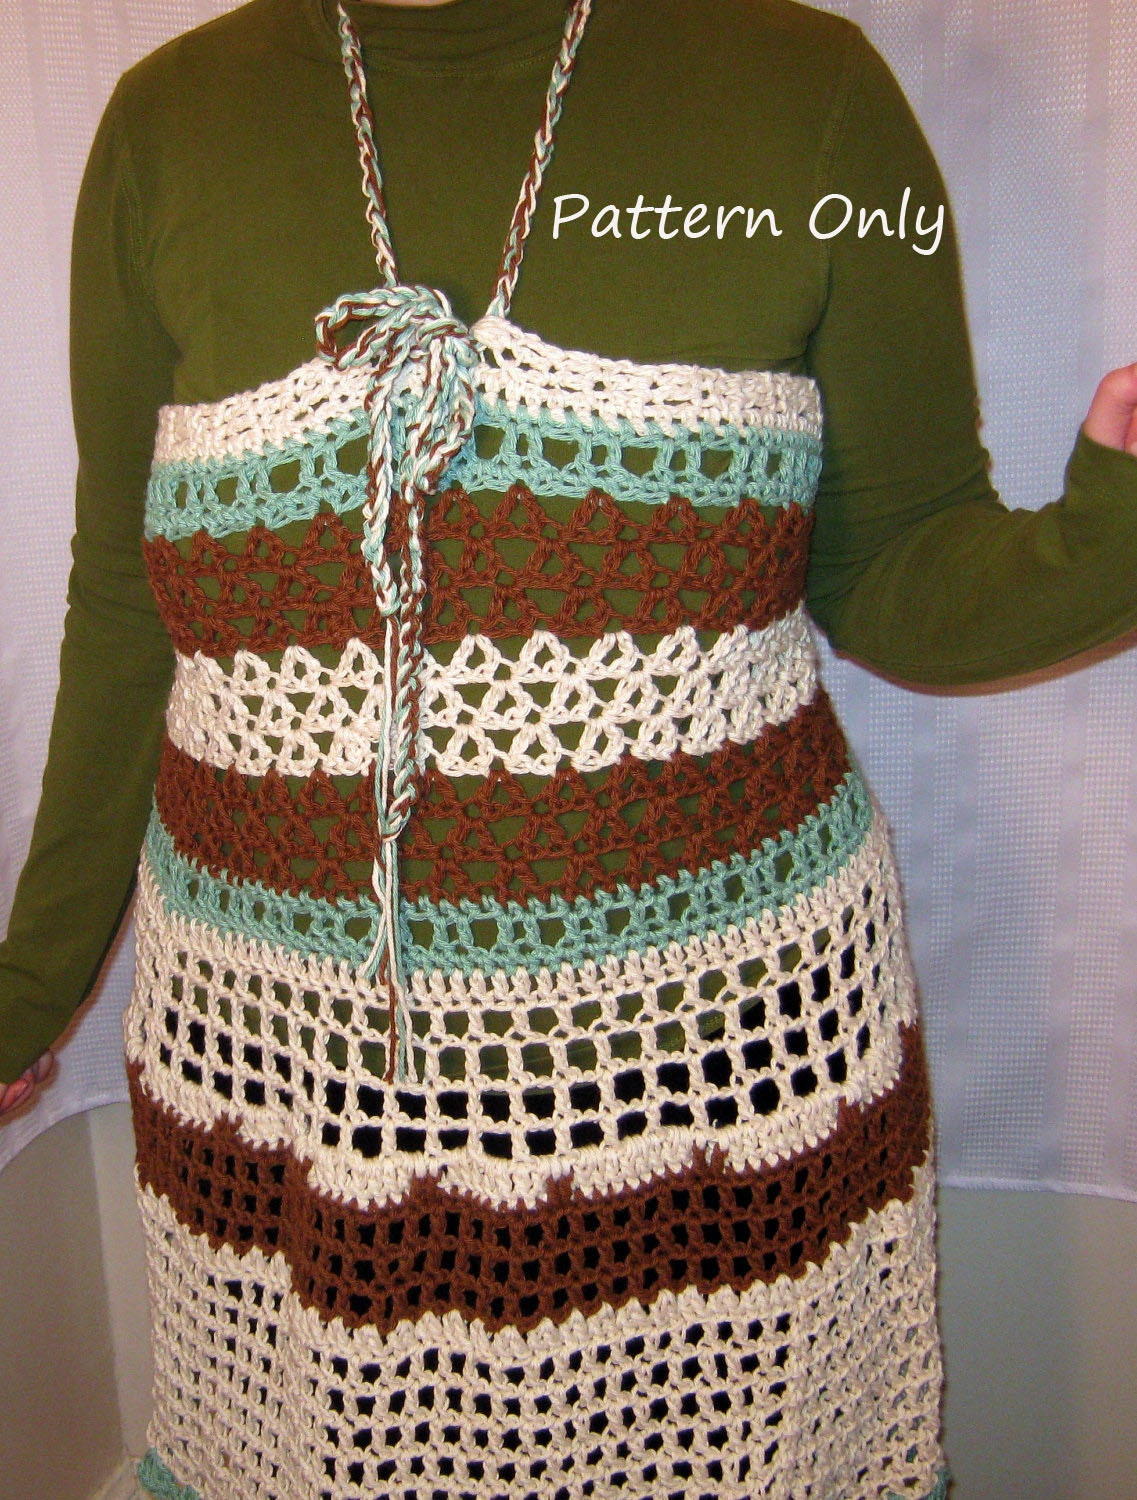 Crochet Xxl Patterns : ... cover up dress, crochet apron dress Crochet PDF Pattern. Small to XXL